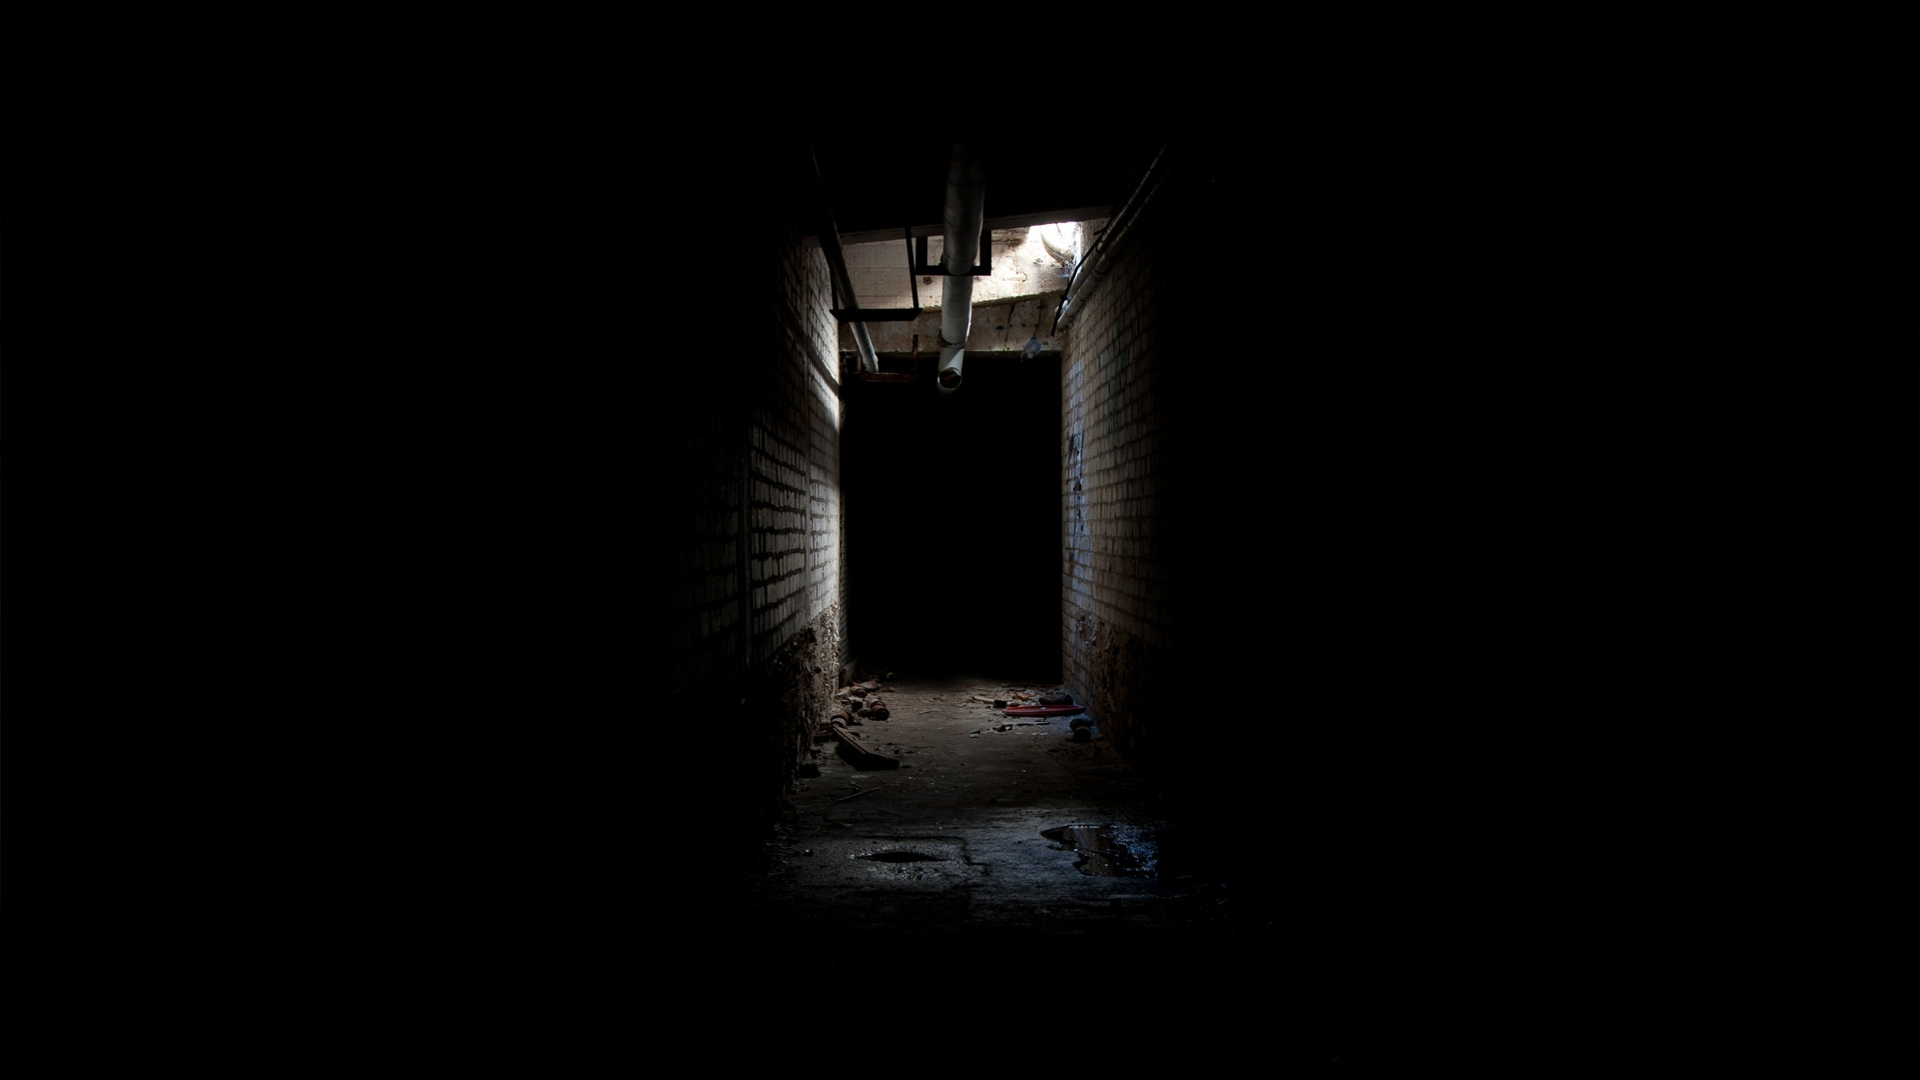 Creepy Corridor Hallway Black Dark Creepy Wallpaper